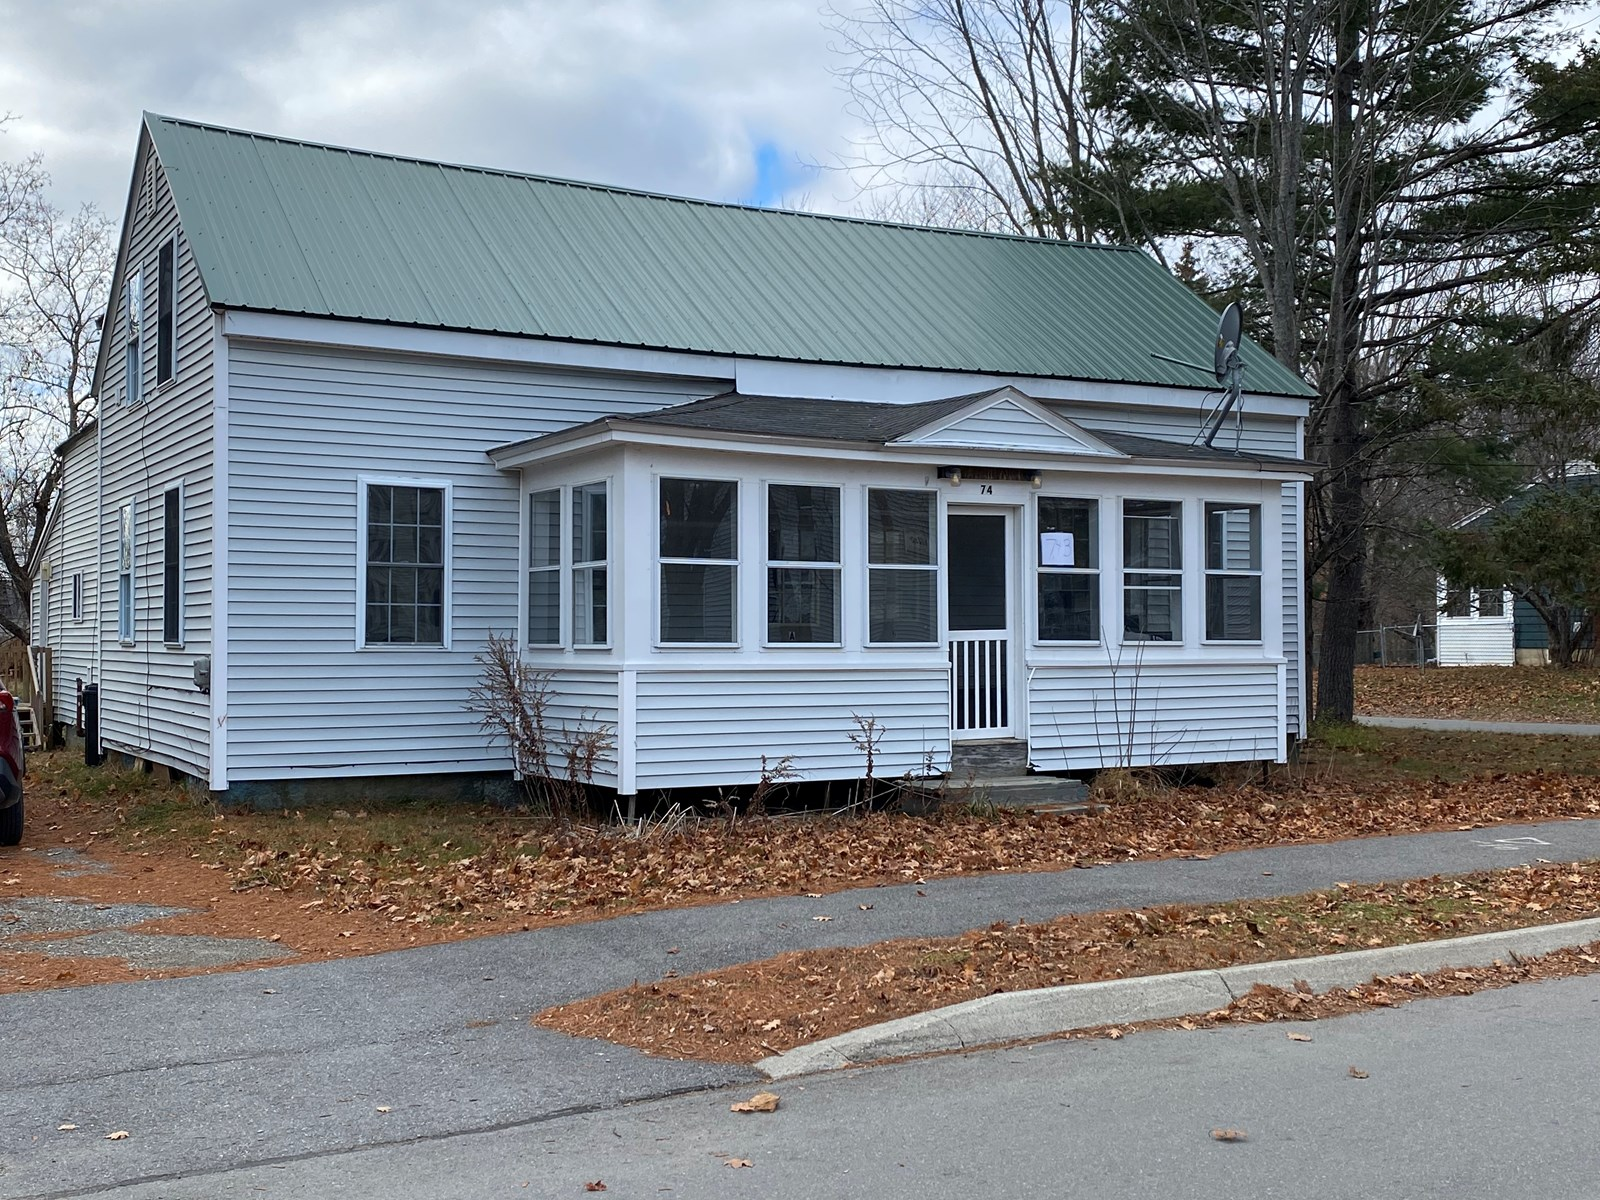 Income Property for Sale in Milford Maine